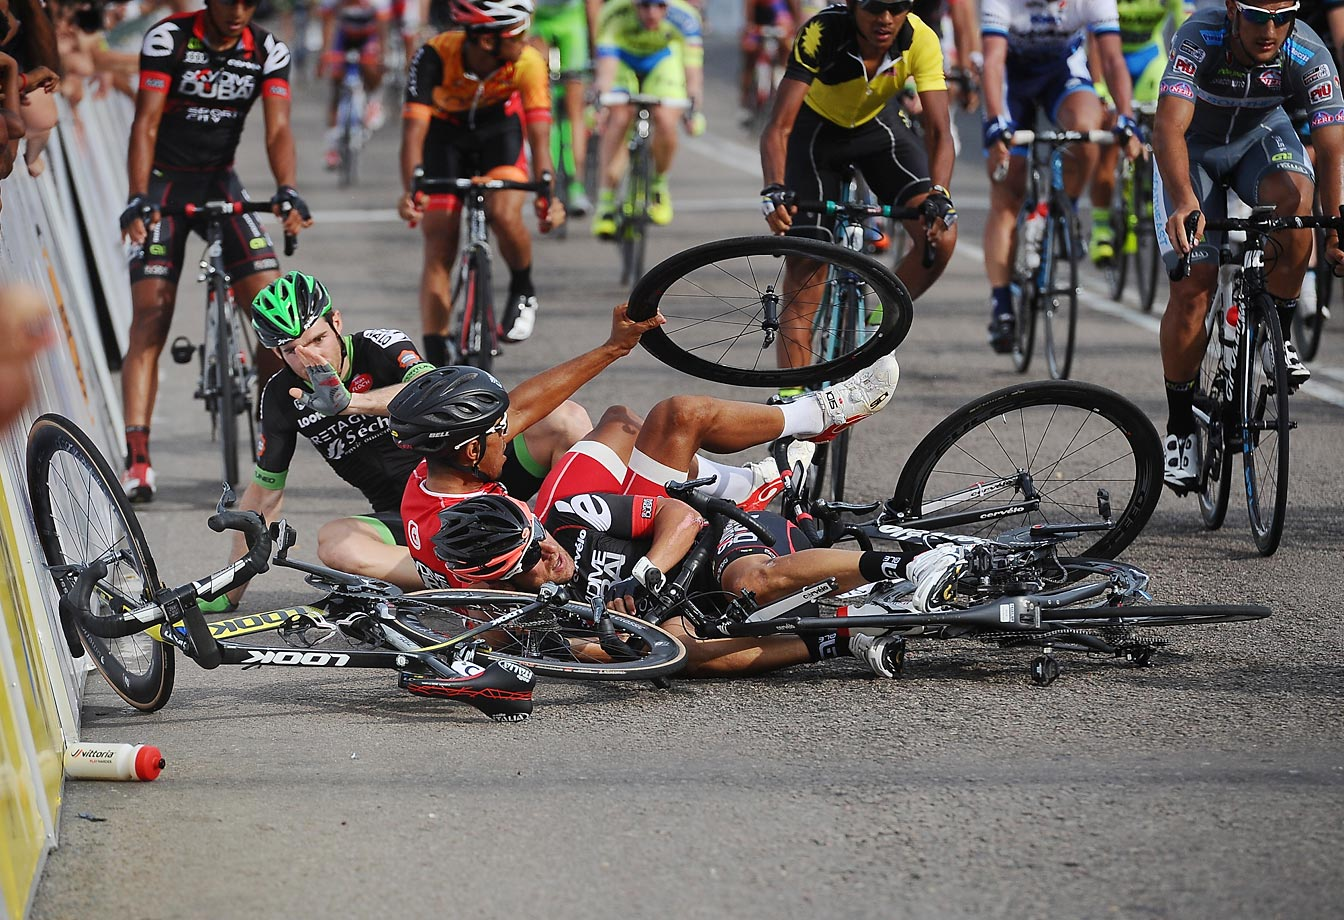 Cyclists pile up moments after finishing stage 6 of the 2015 Le Tour de Langkawi from Maran to Karak.